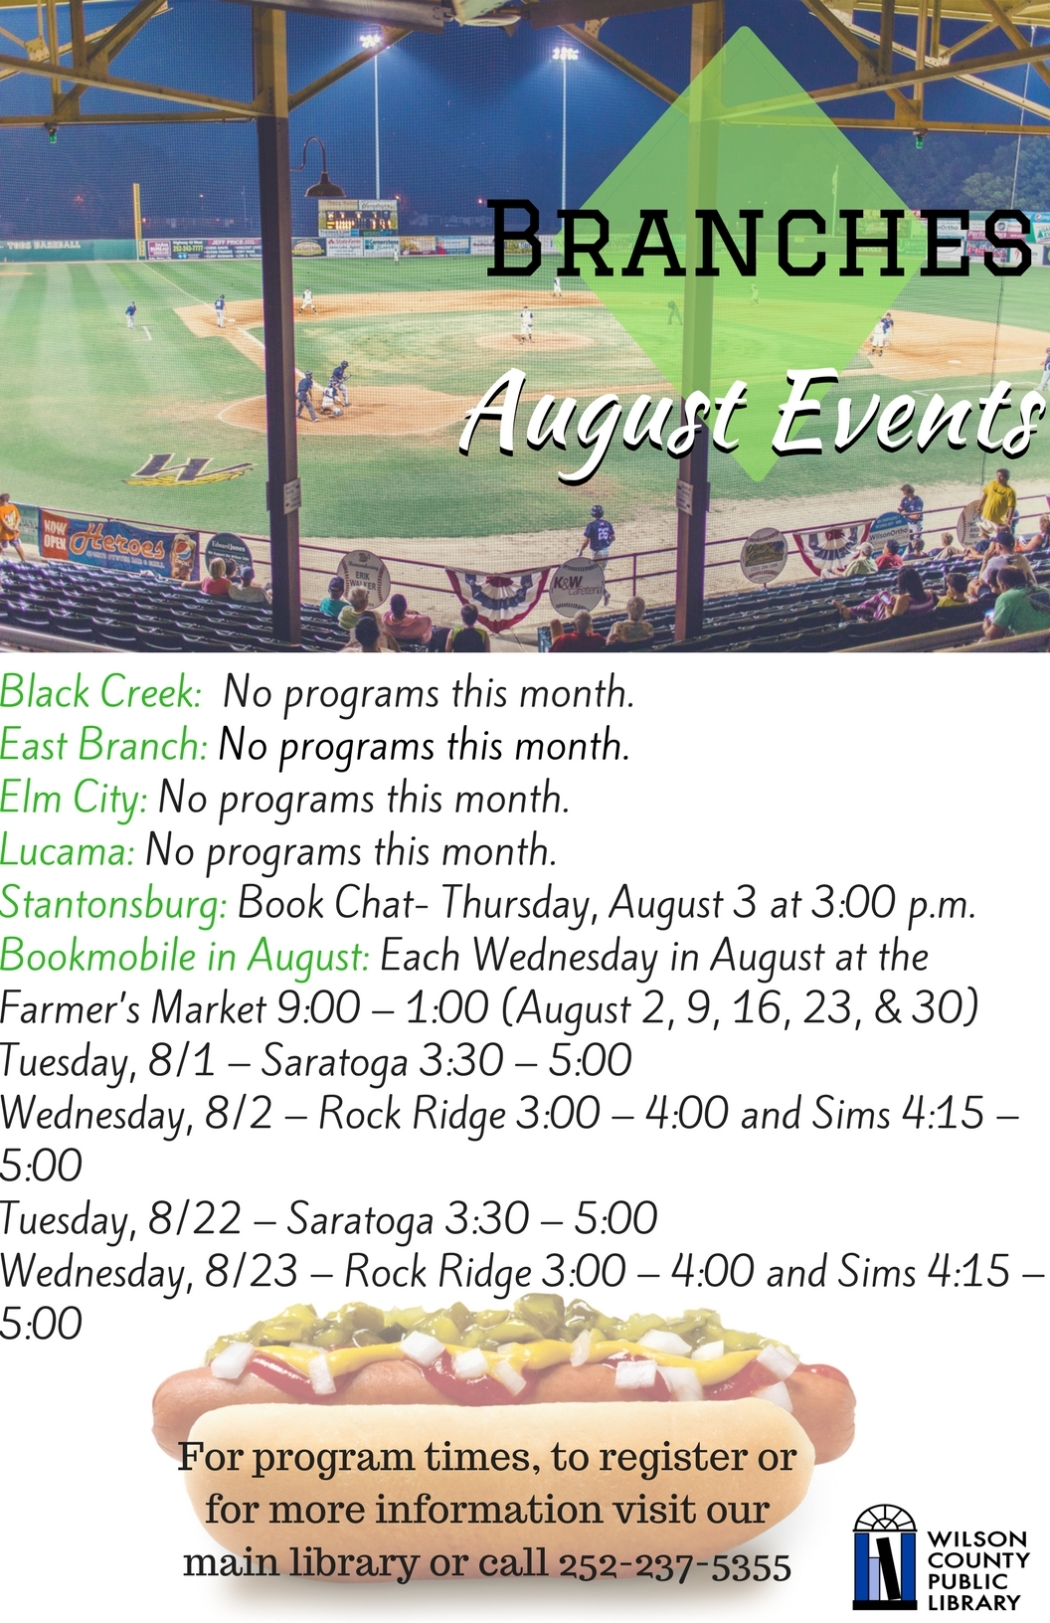 Branches August Events